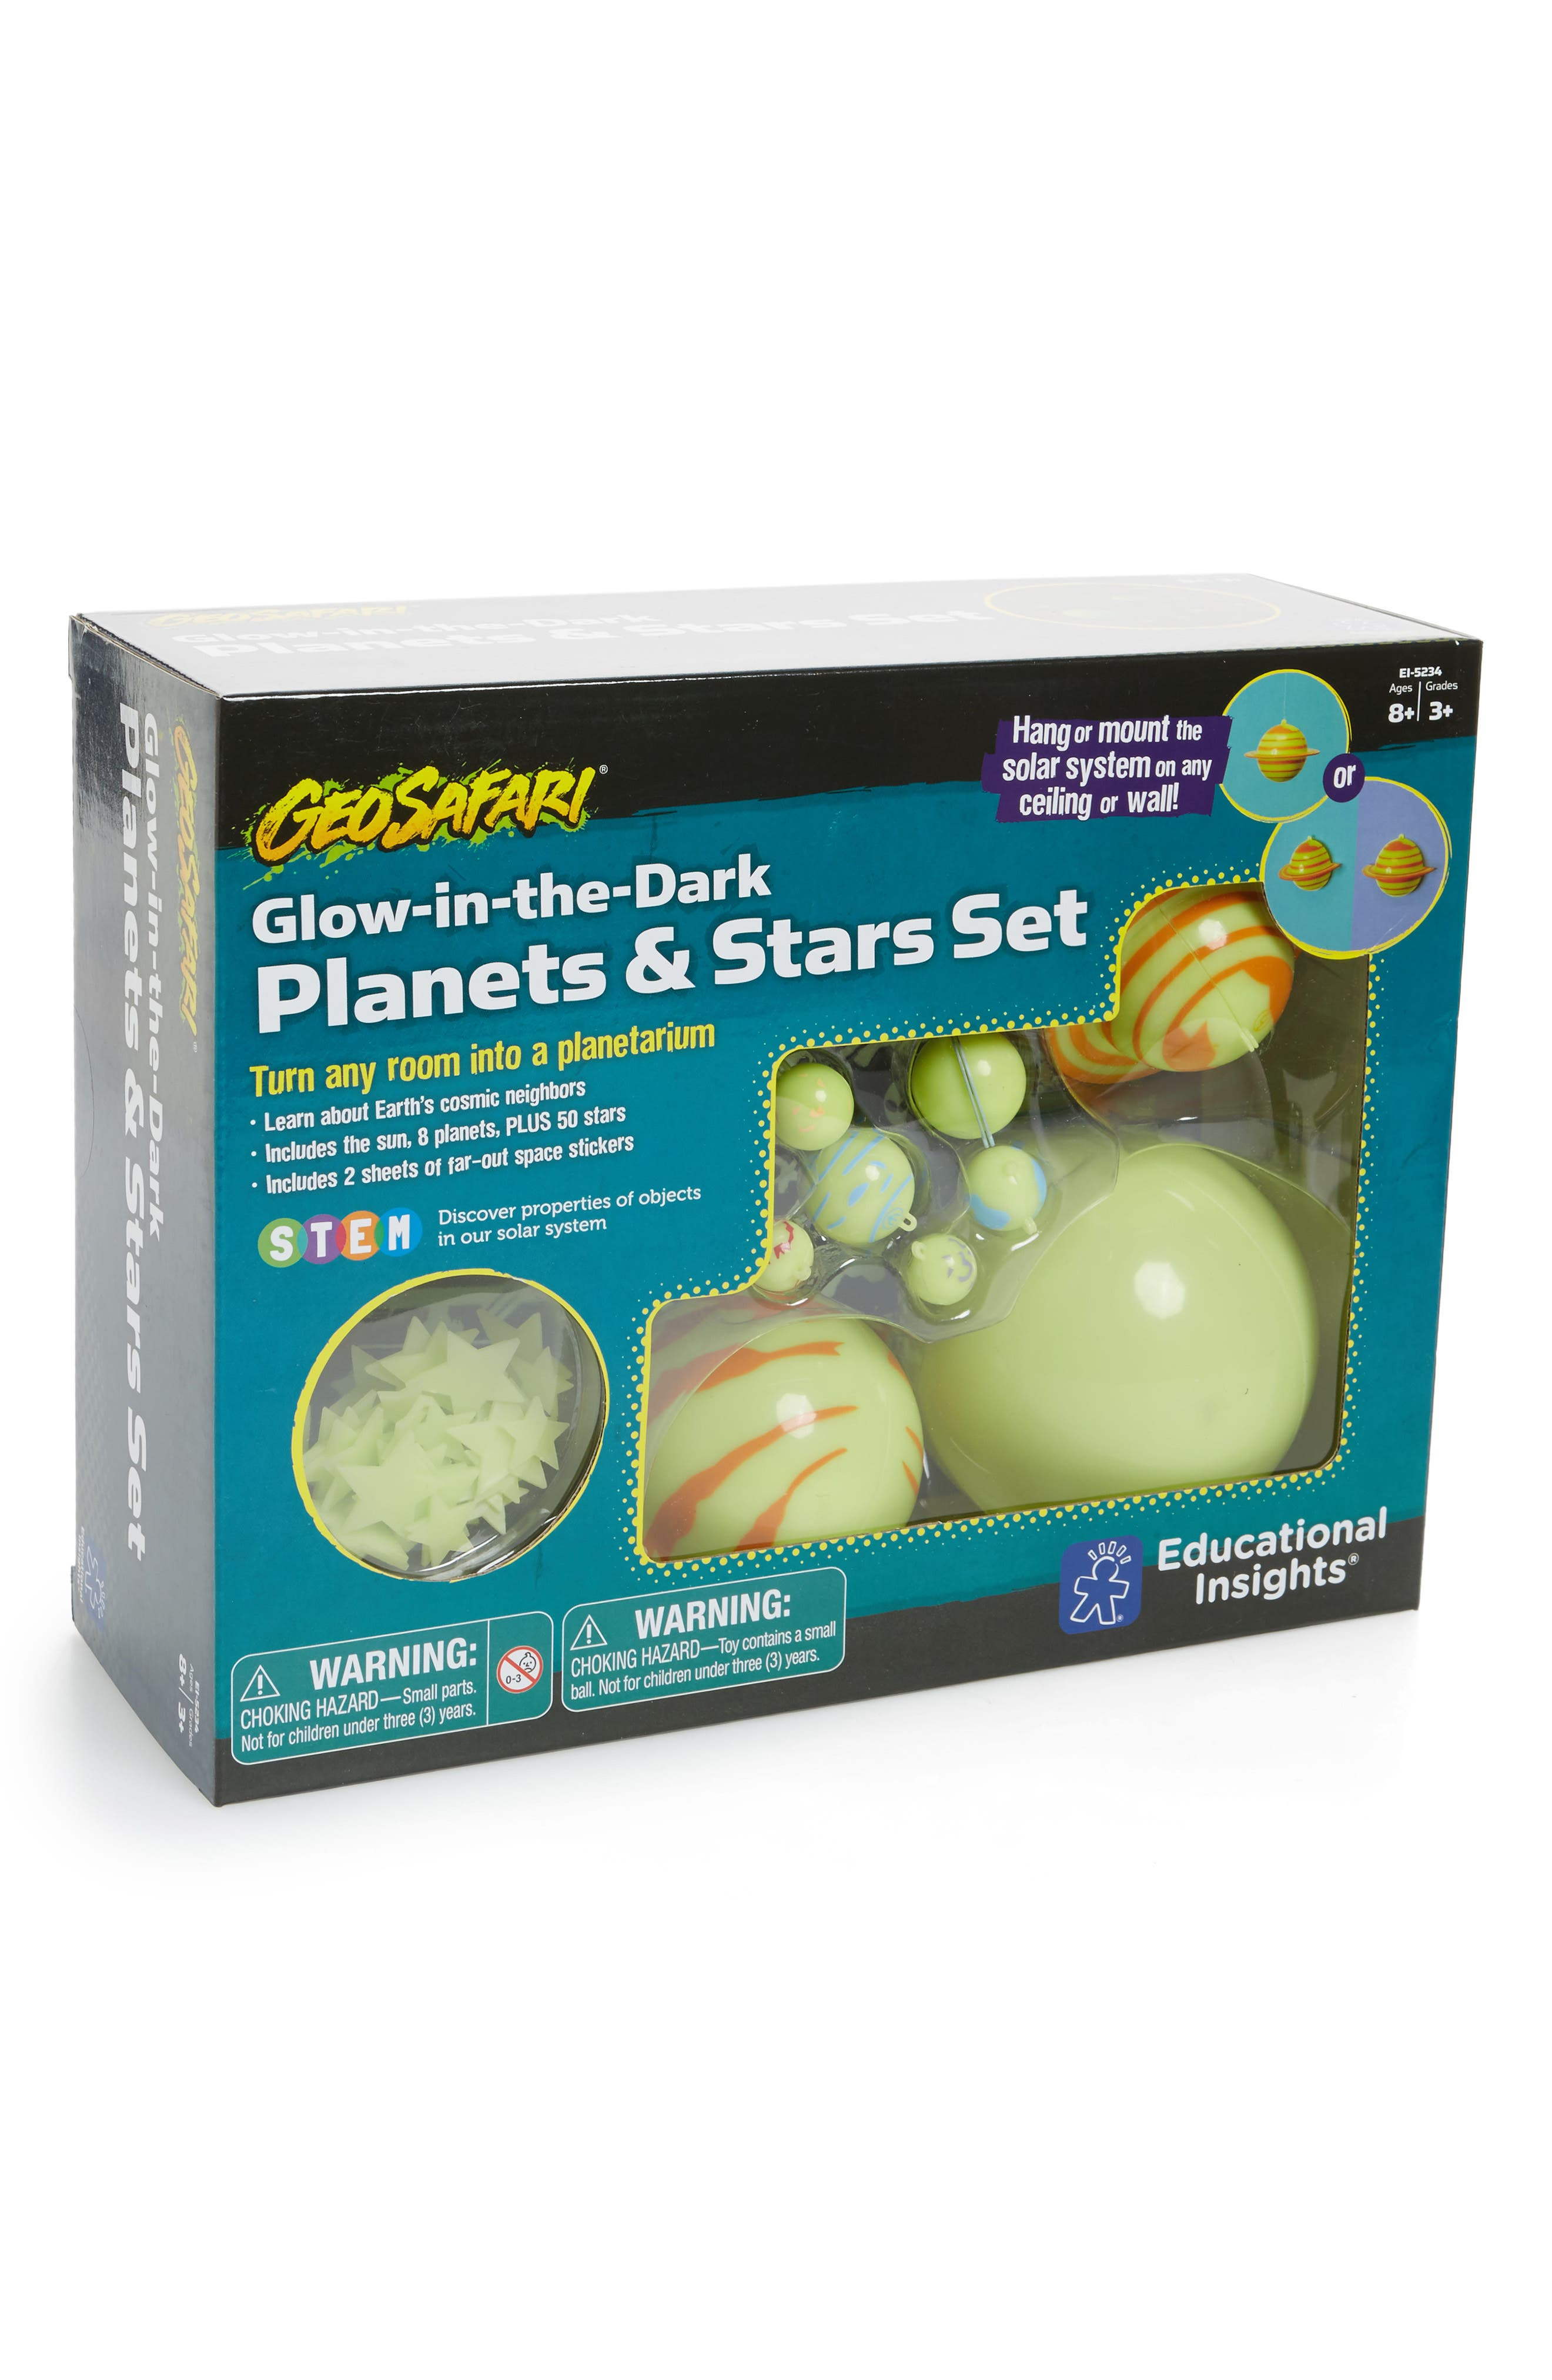 59-Piece Glow in the Dark Planets & Stars Set,                             Main thumbnail 1, color,                             300